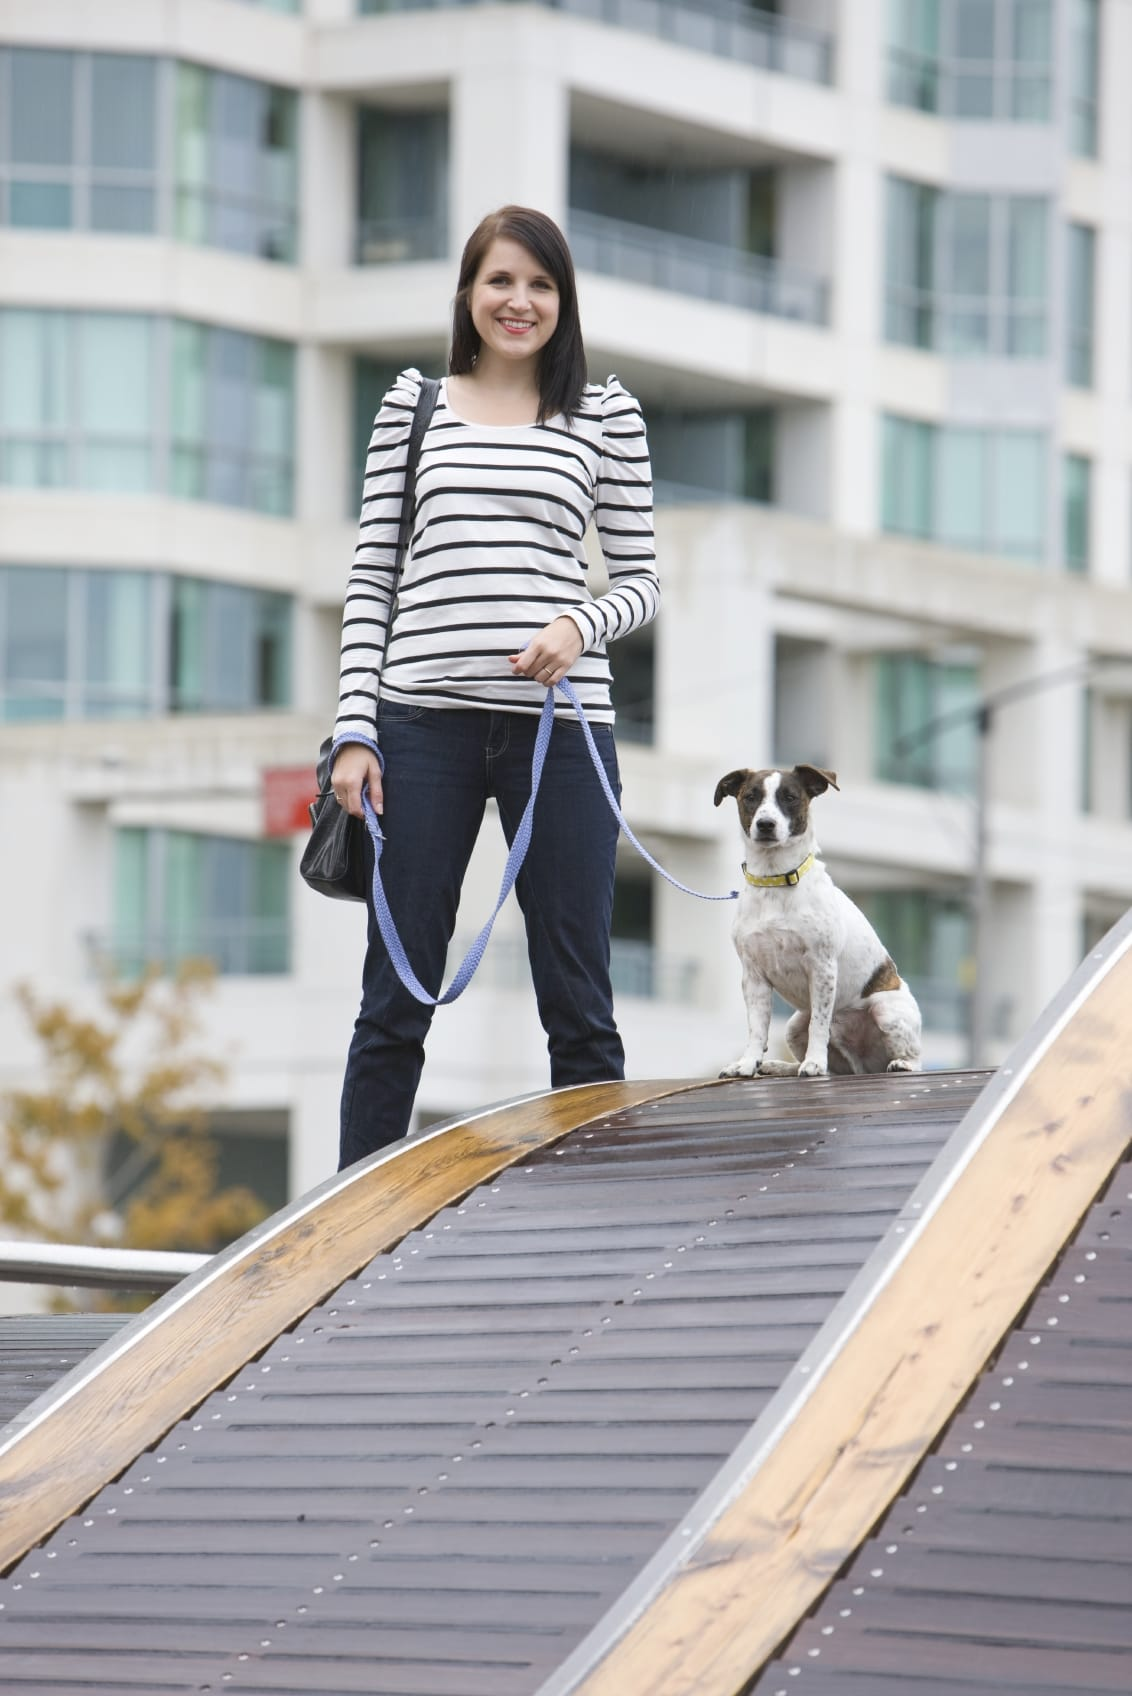 Pets & Apartments for Rent